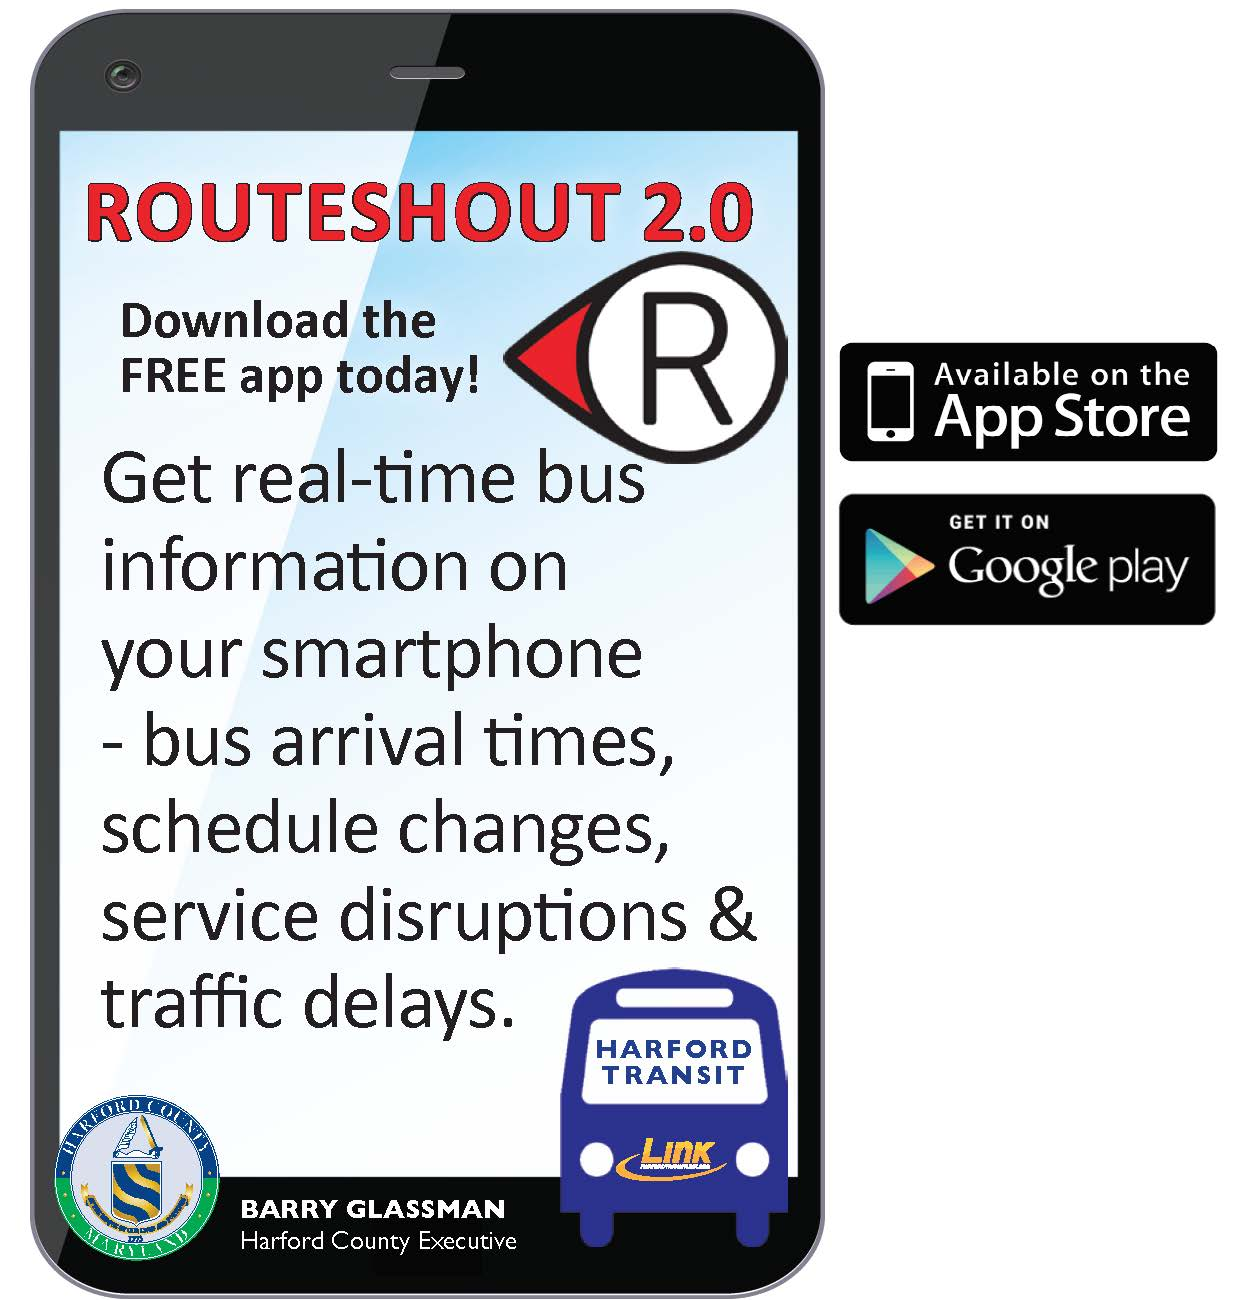 RouteShout 2.0 Cell Phone Icon